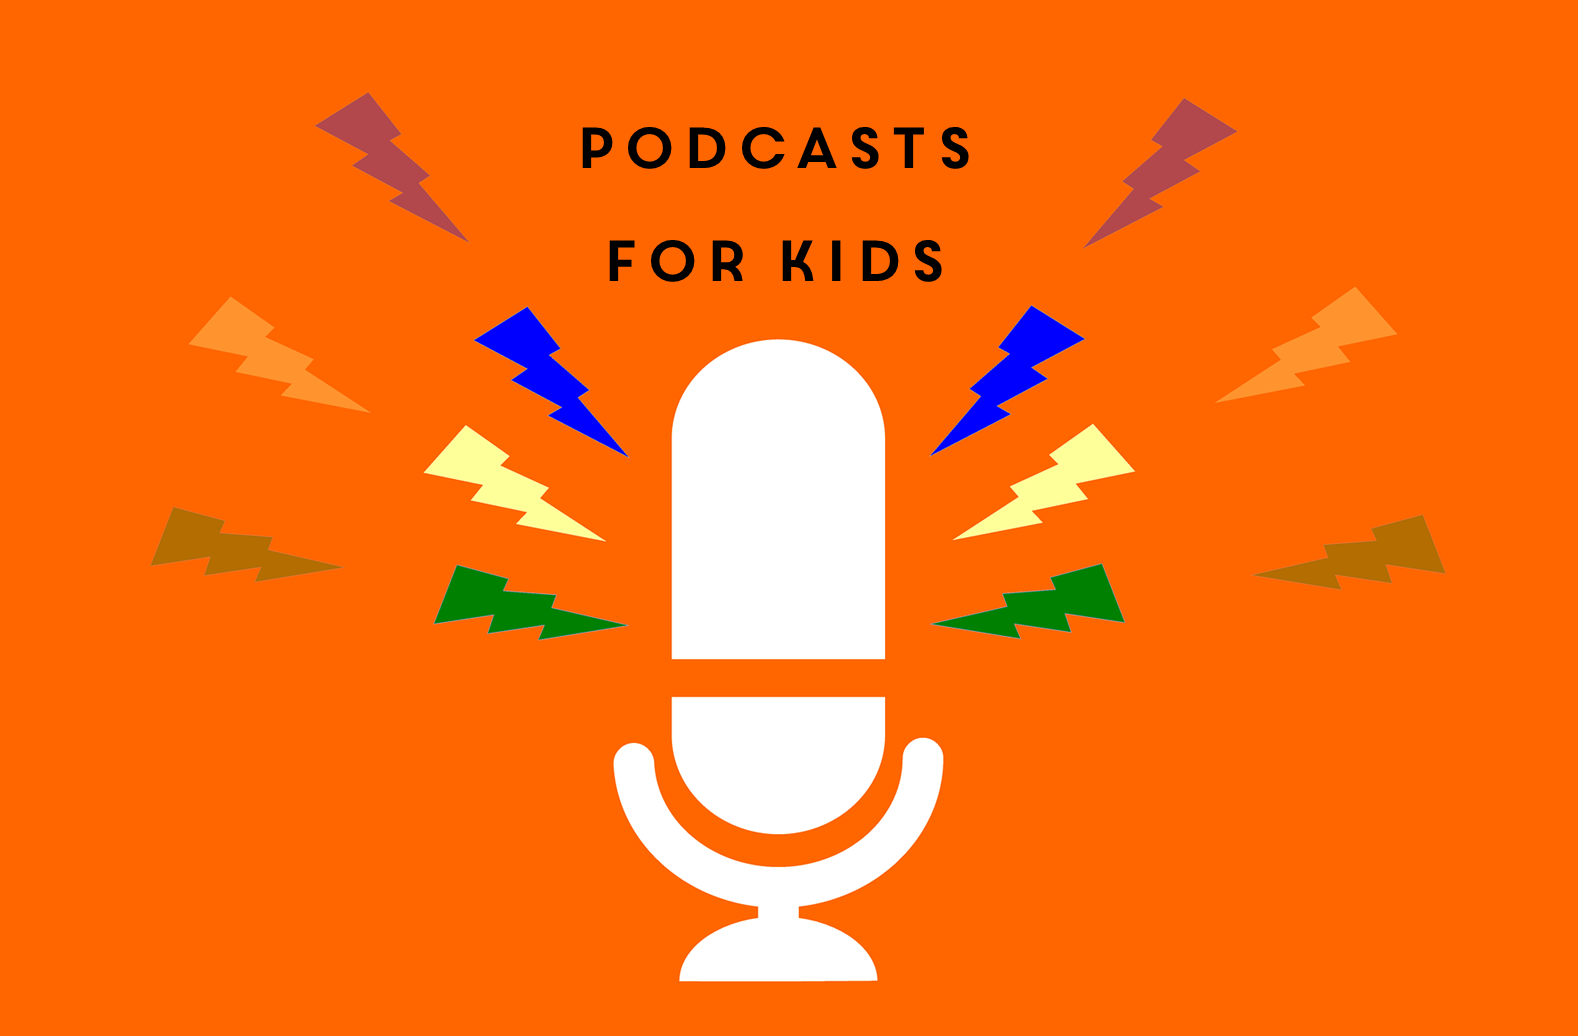 7 Podcasts for Kids Under 7